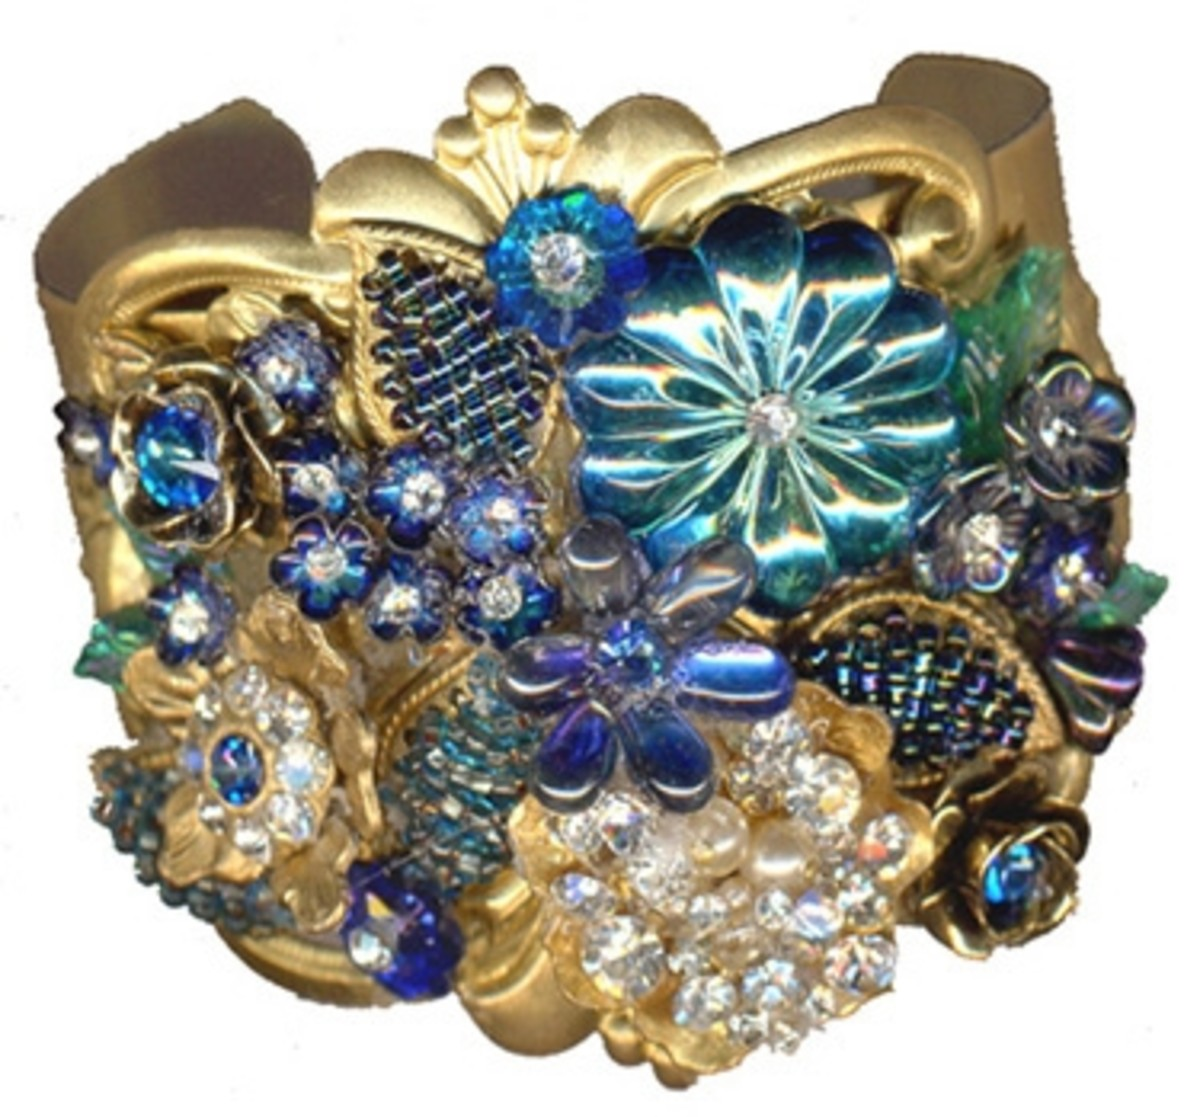 Collage cuff bracelet with genuine and reproduction vintage components, by Margaret Schindel